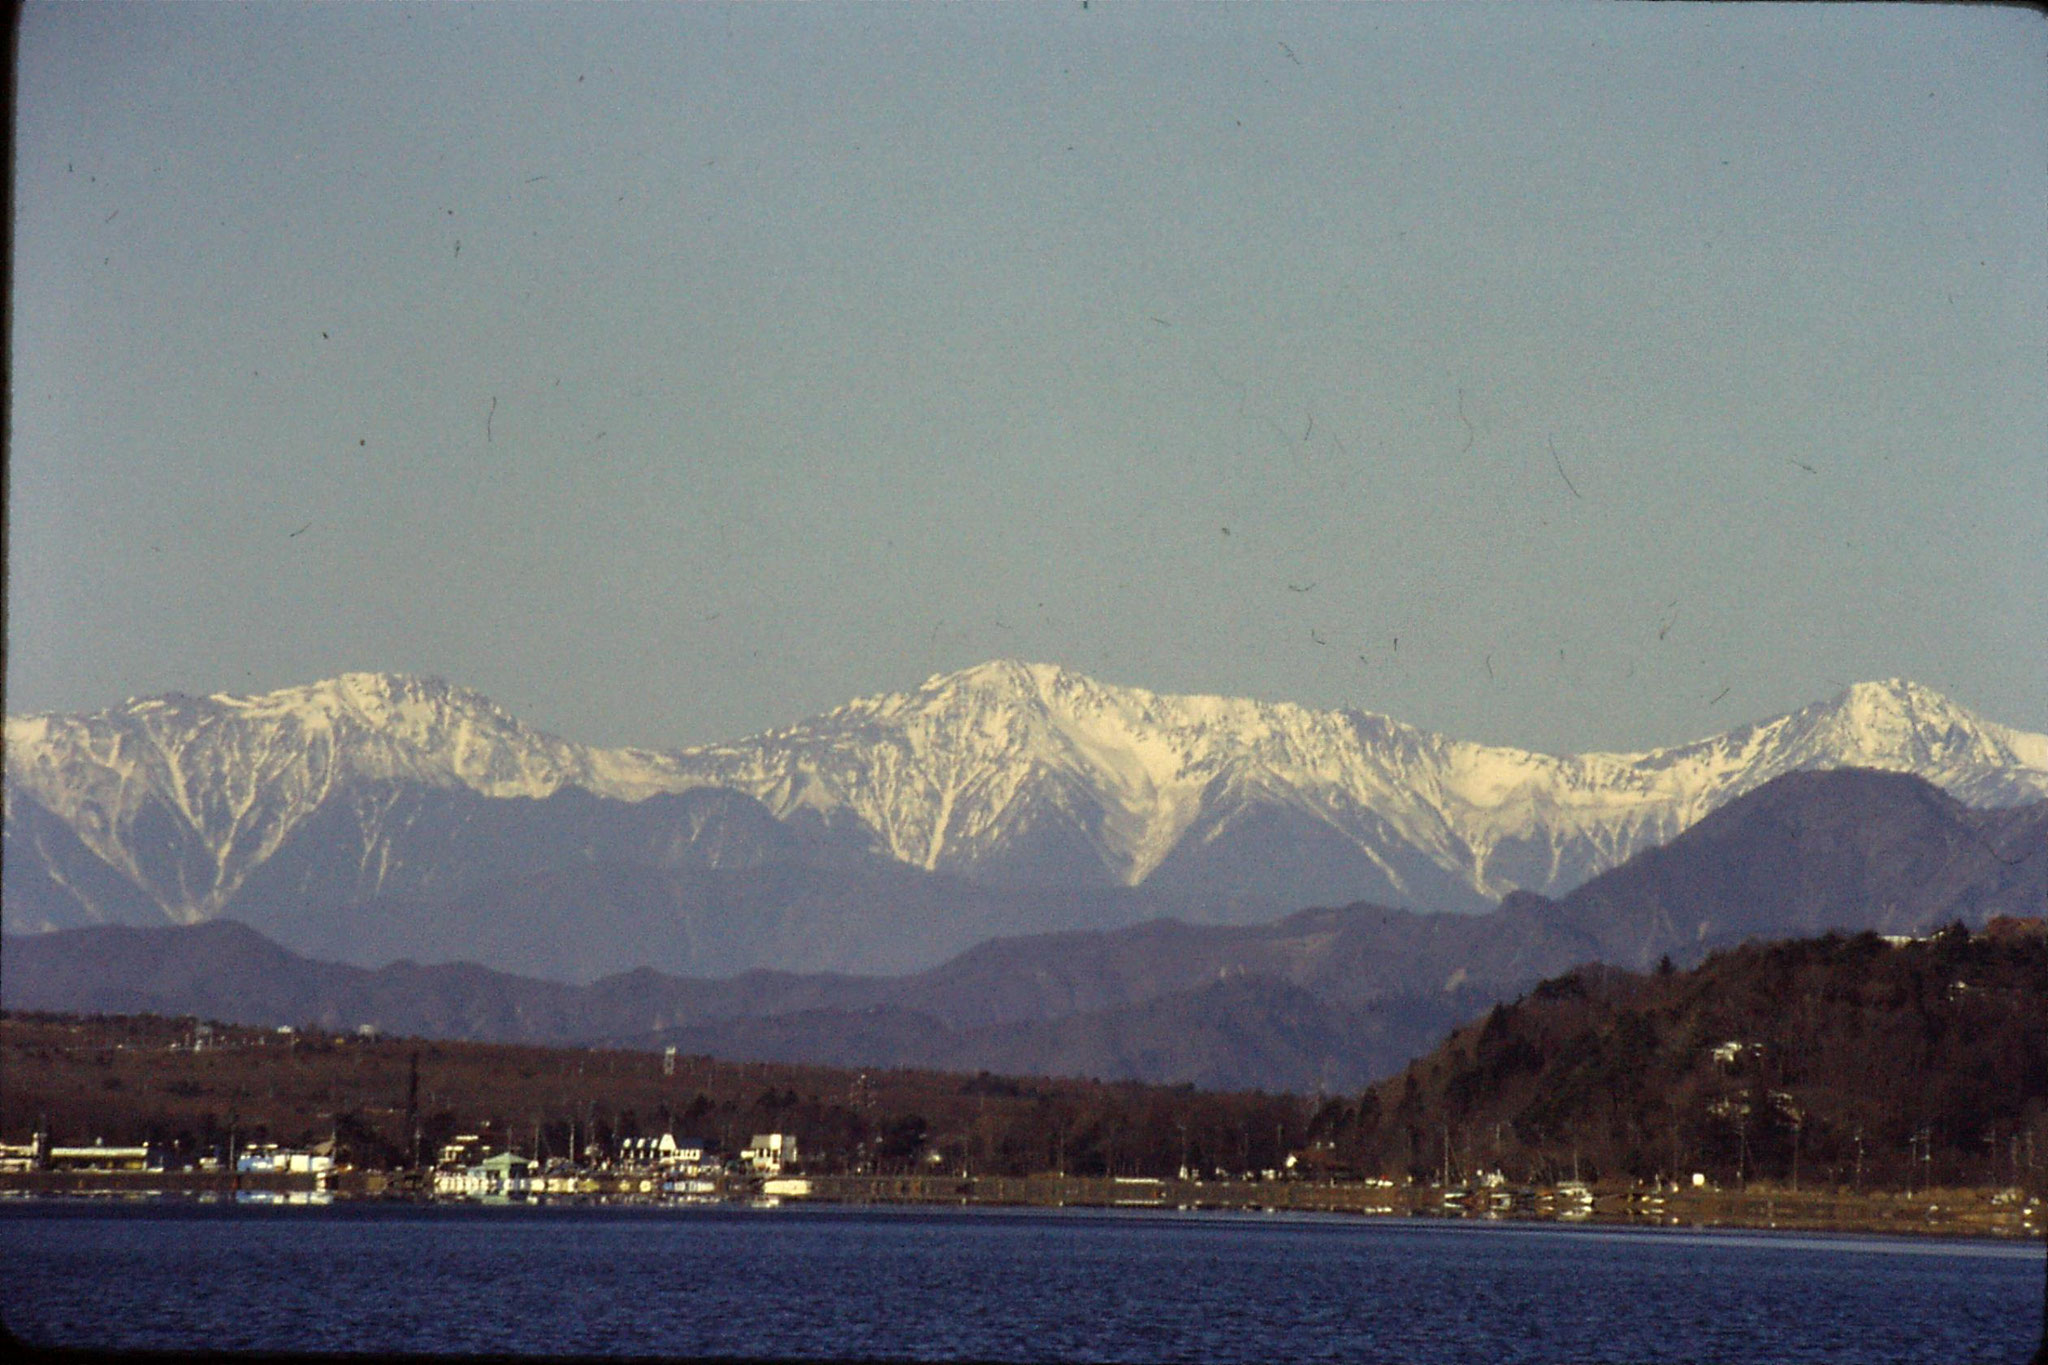 30/12/1988: 4: walk up Mt Ishiwara